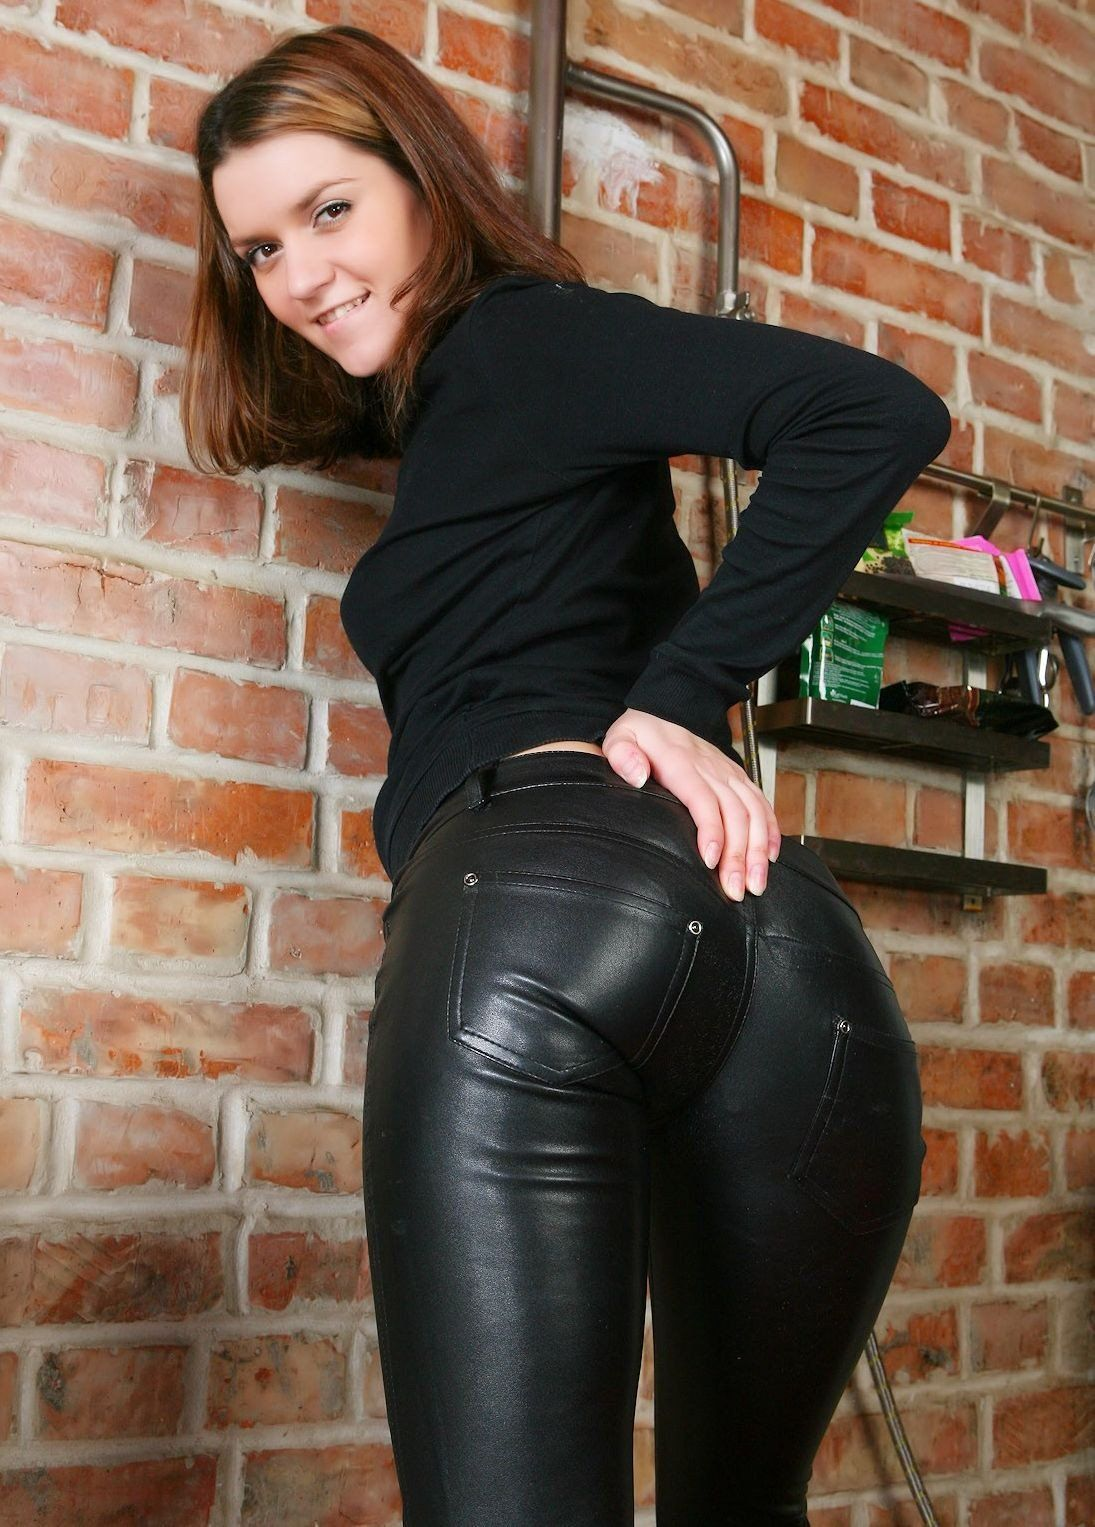 Ladies In Leather On Leather Pants Leather Look Jeans Tight